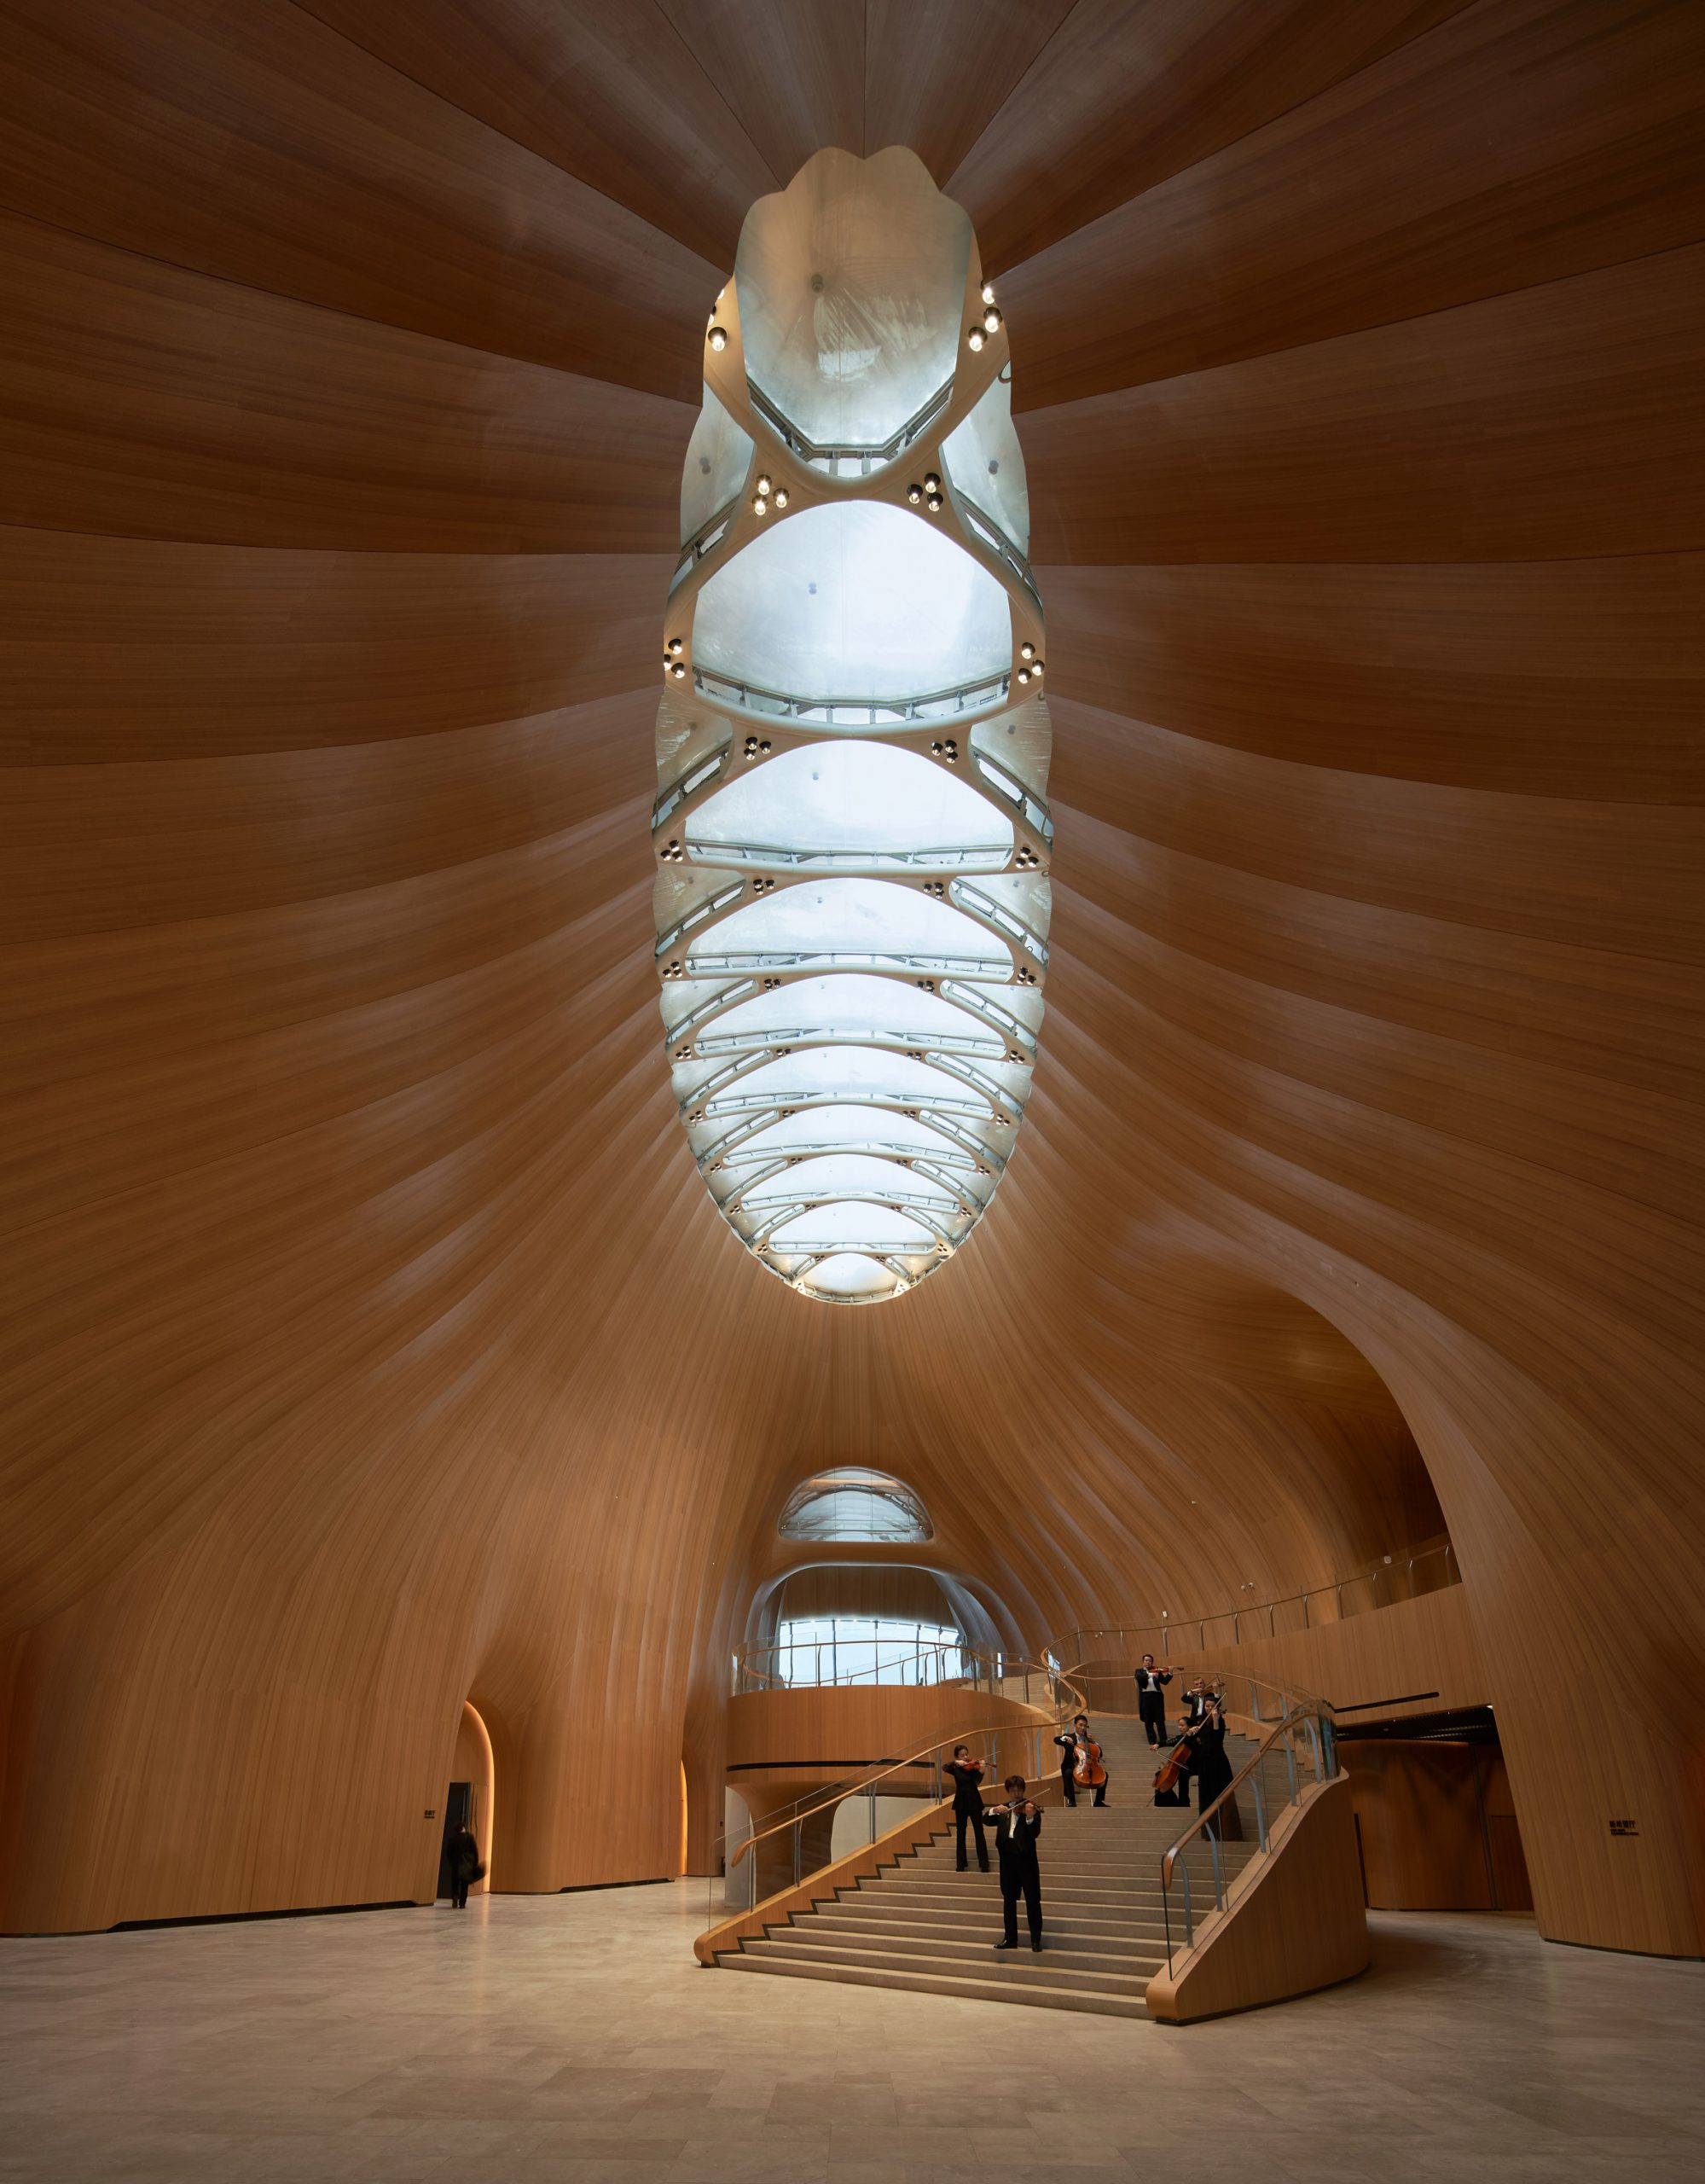 Conference centre skylight by MAD